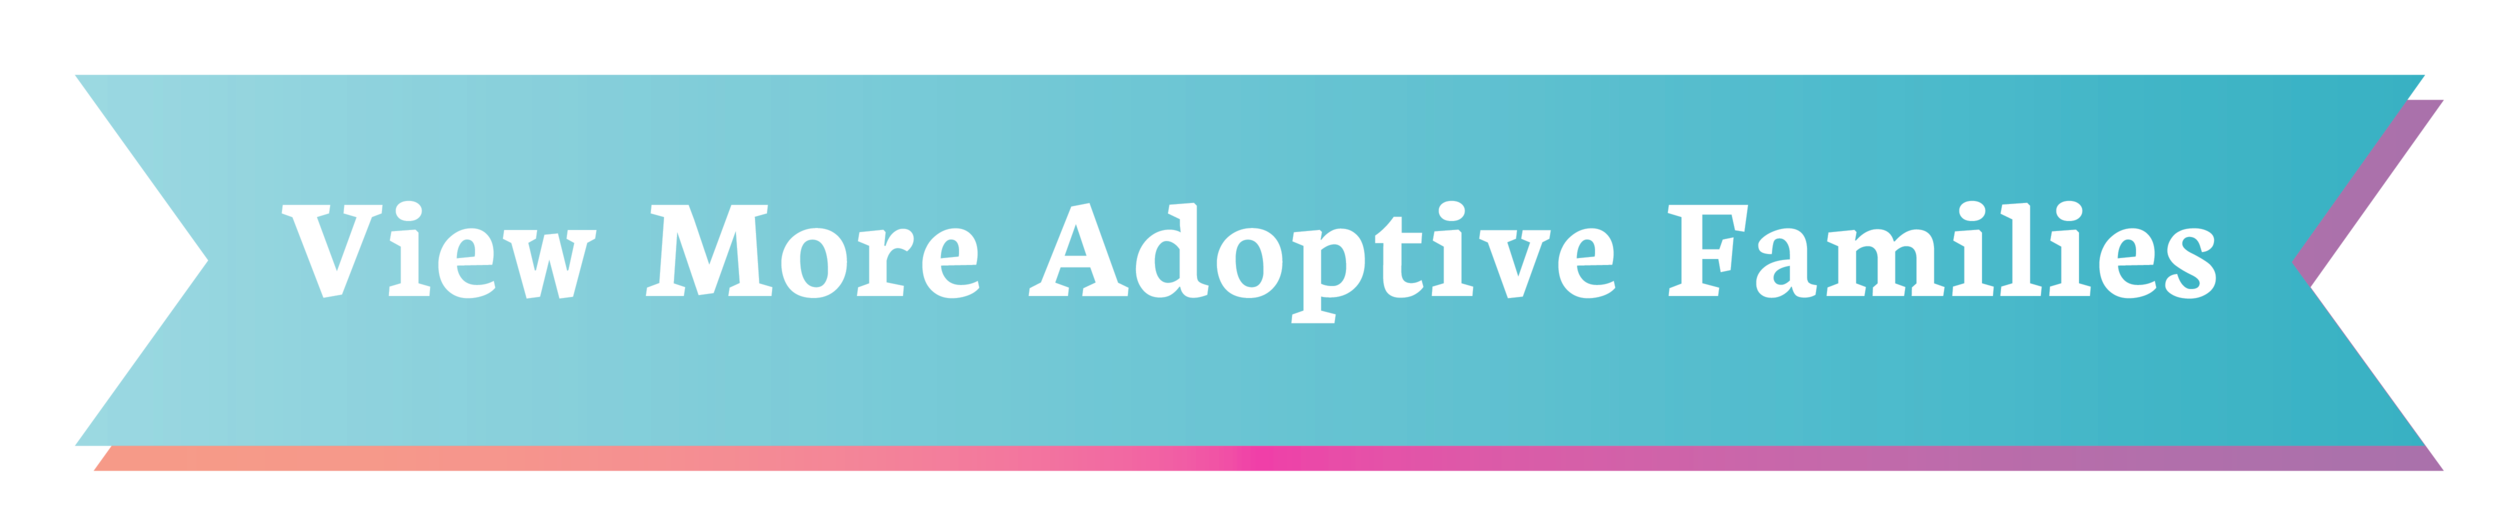 view more adoptive families